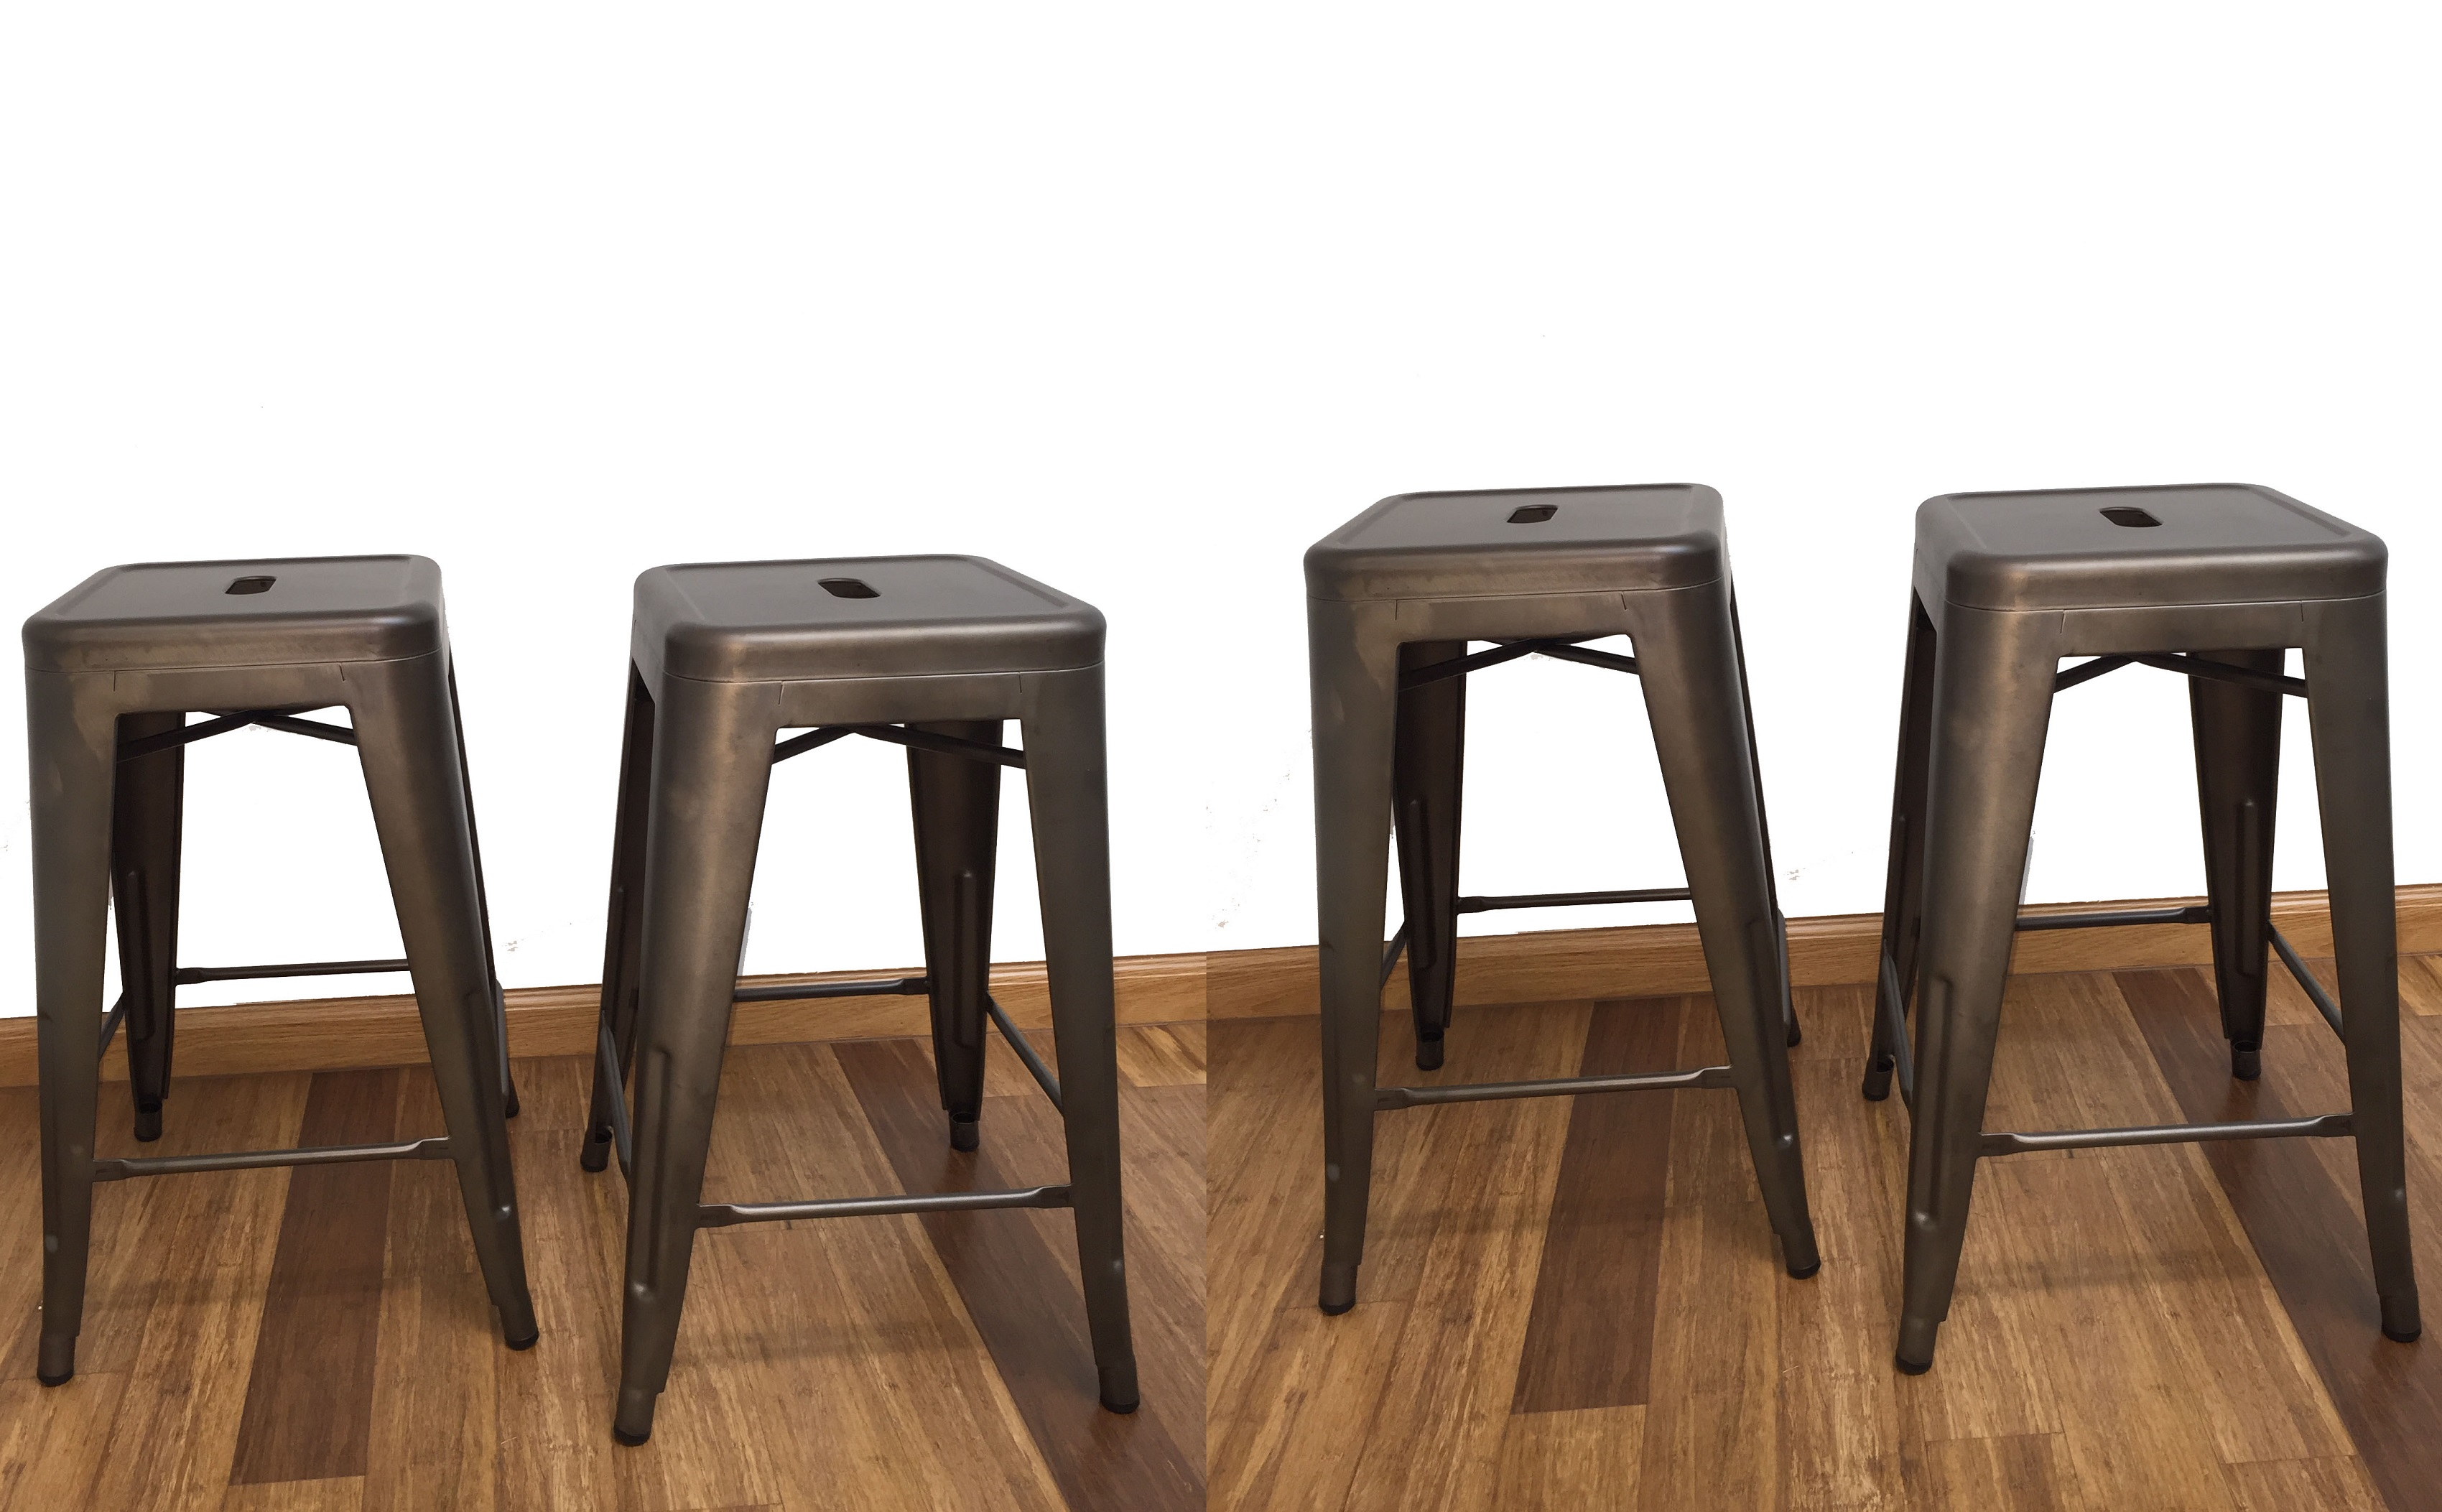 btexpert 24 inch industrial stacking tabouret metal. Black Bedroom Furniture Sets. Home Design Ideas